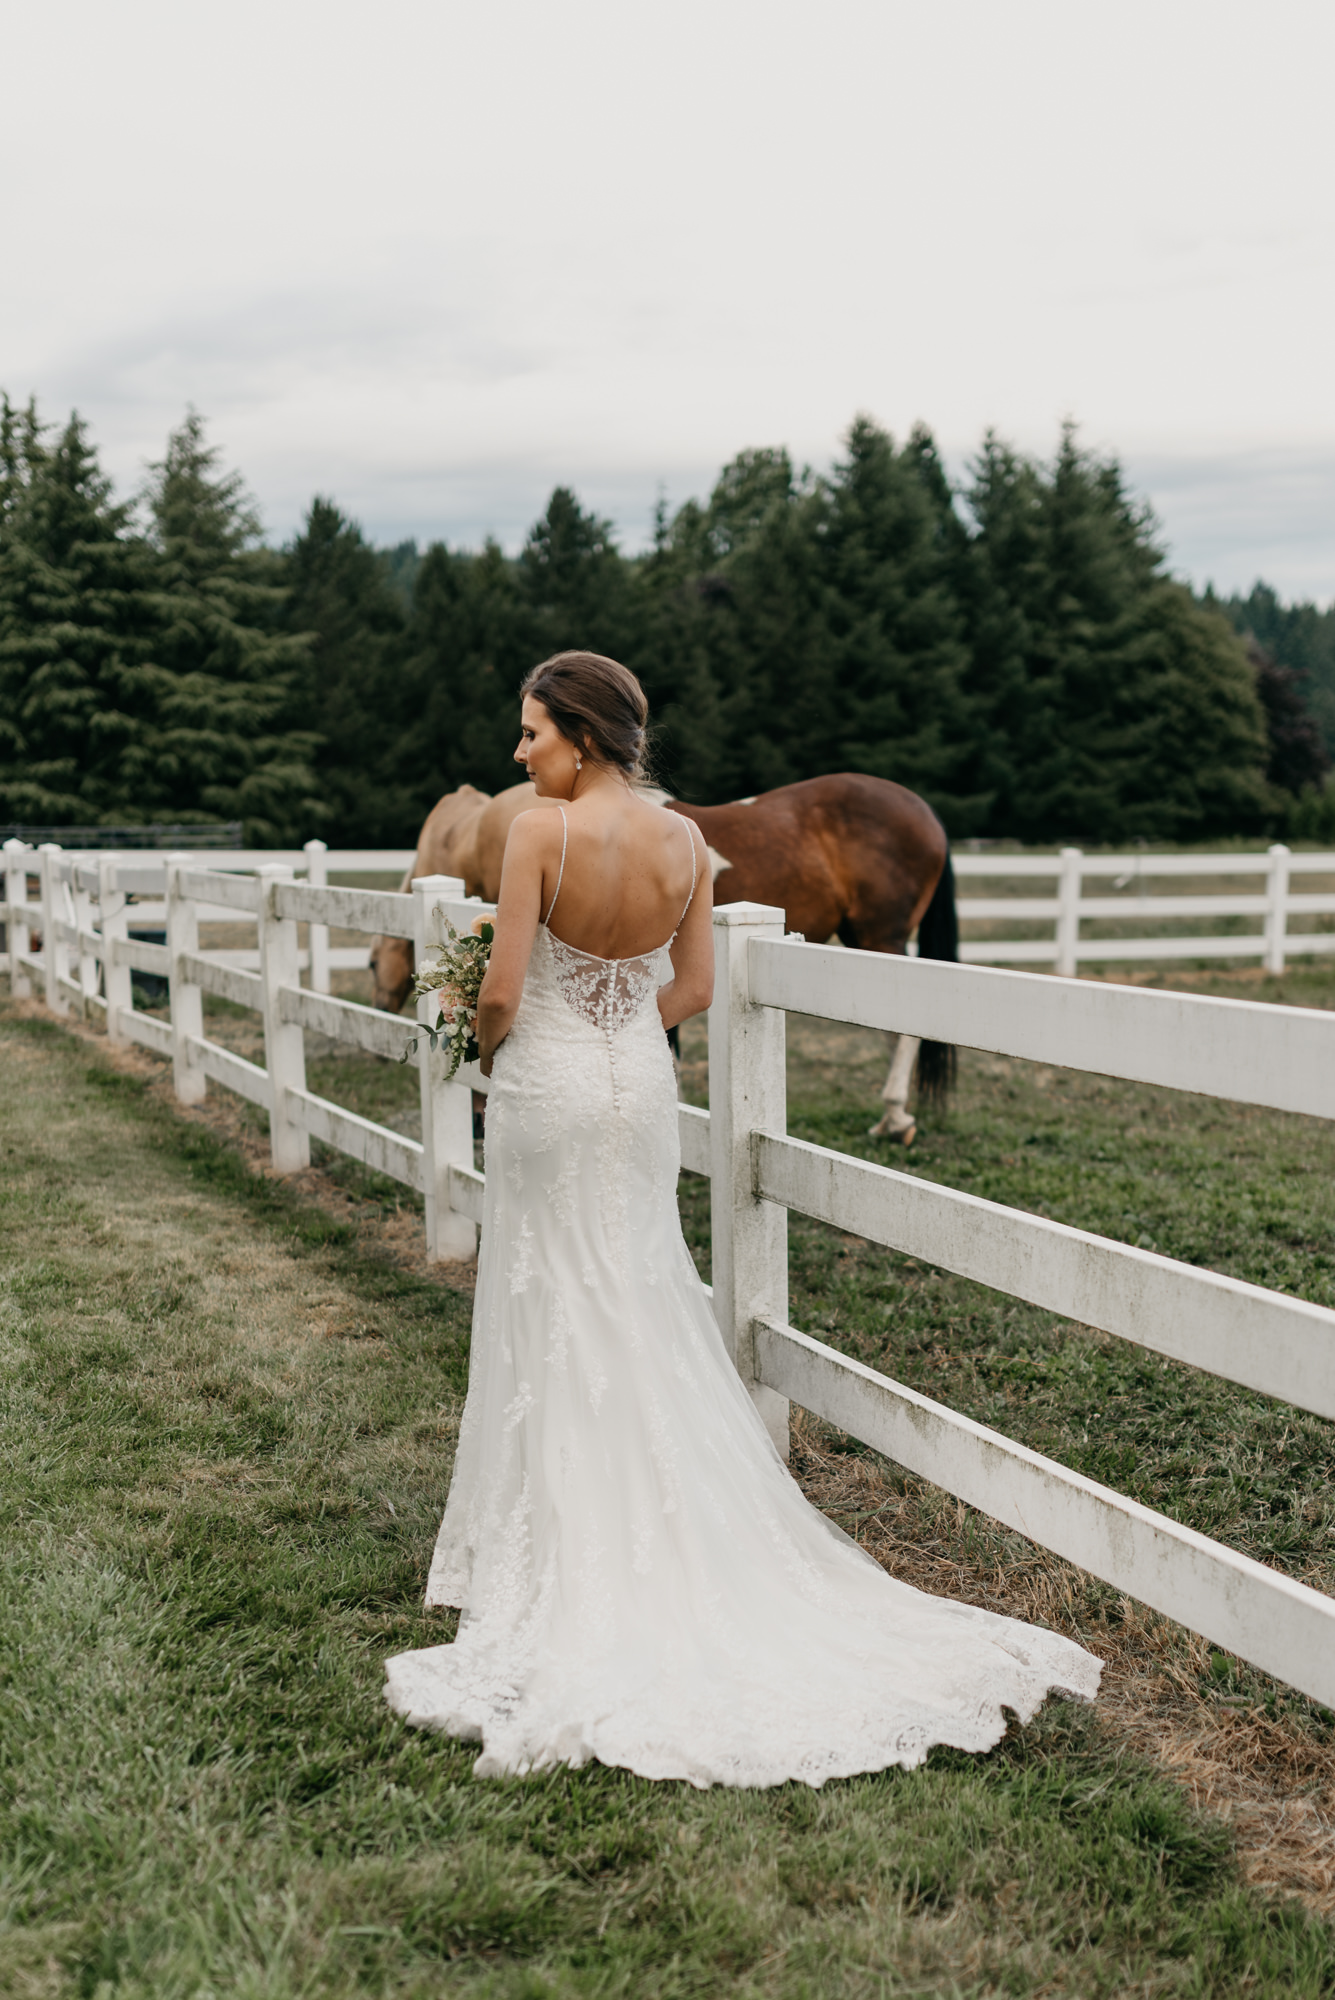 187-barn-kestrel-portland-northwest-horse-sunset-wedding.jpg